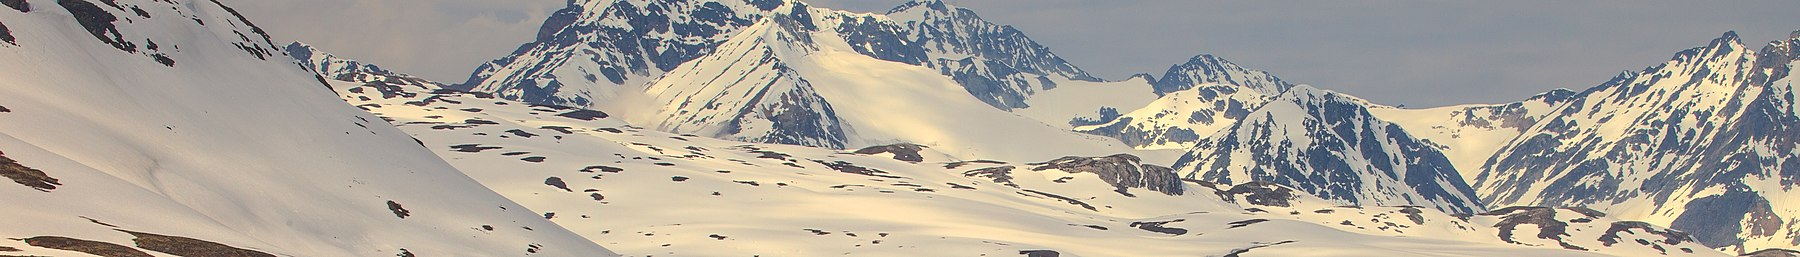 Alaska banner Mountain panorama 2.jpg